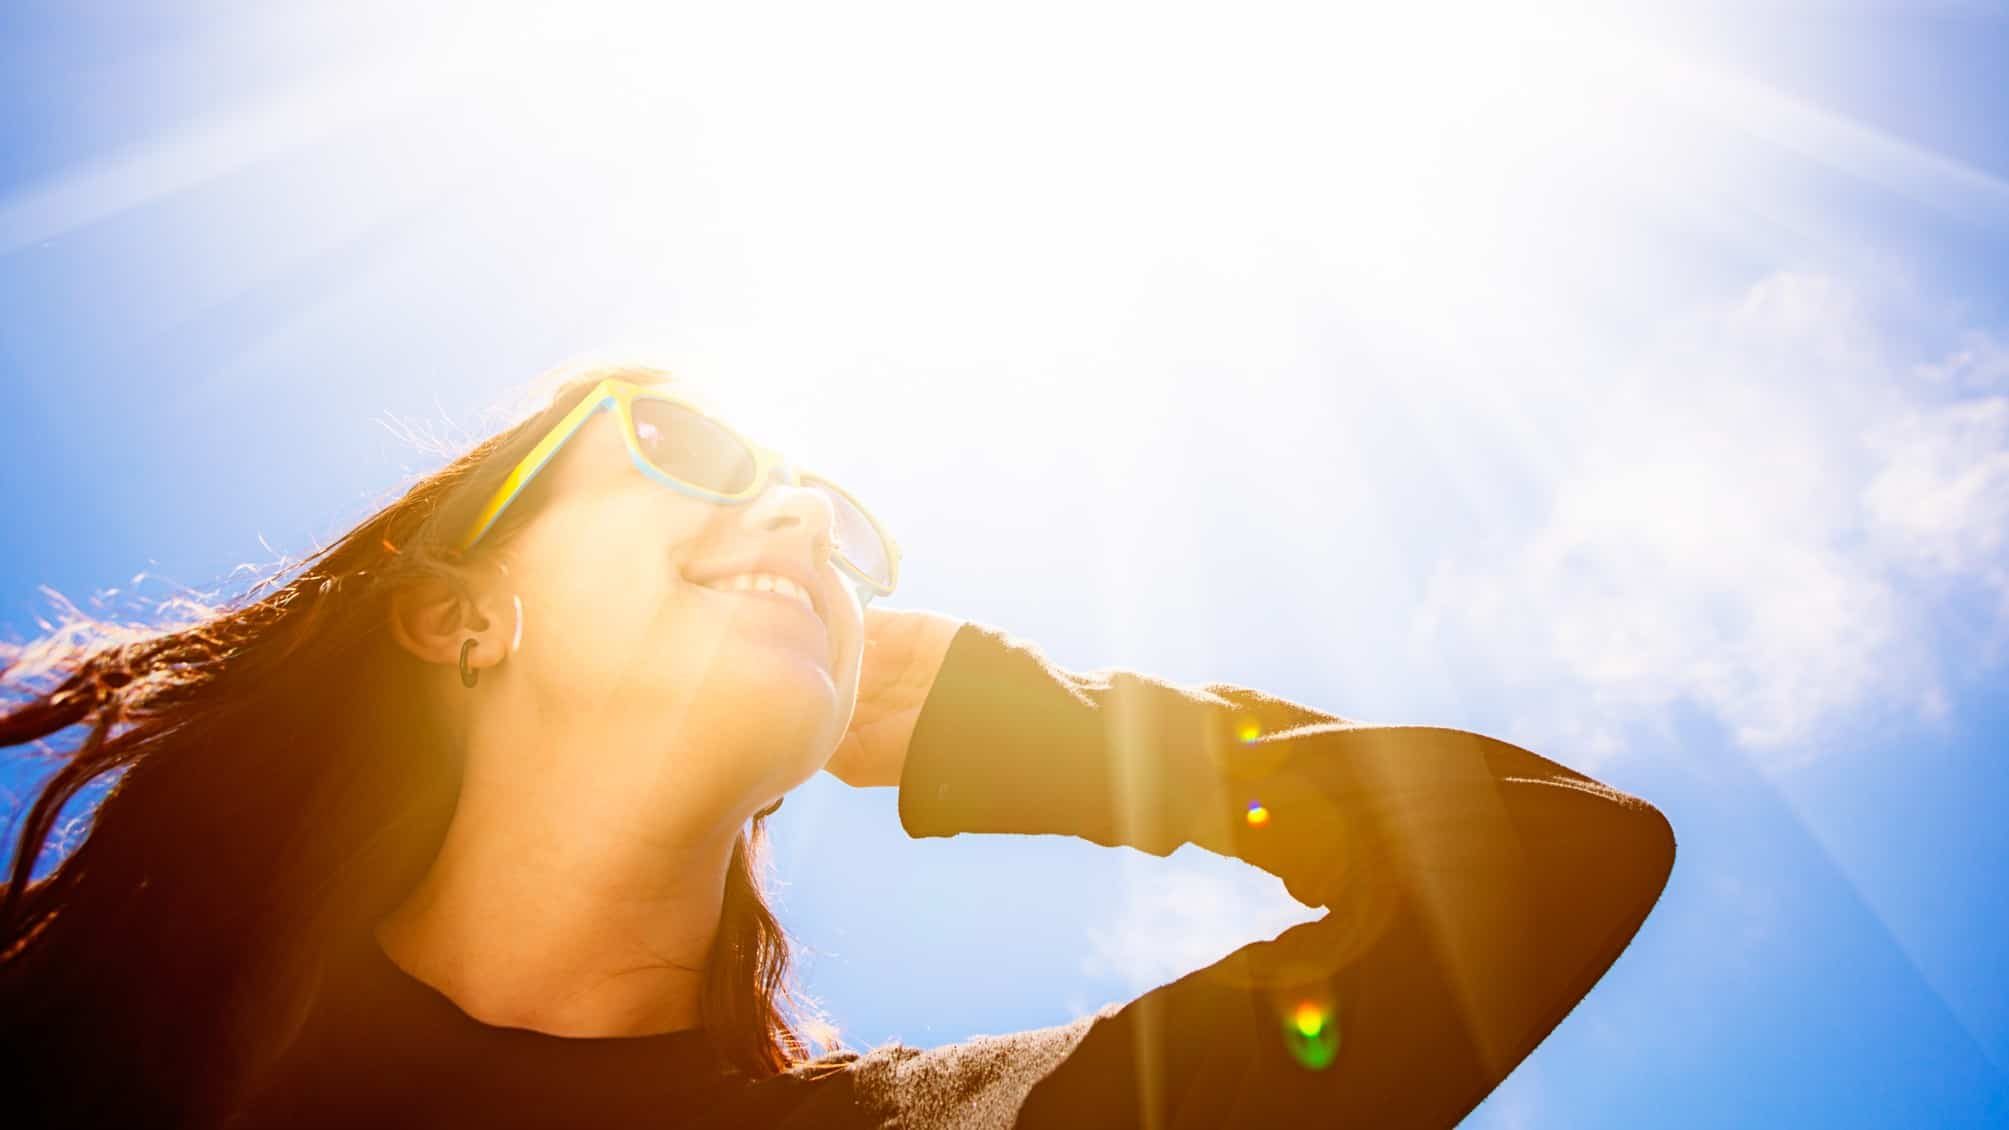 a woman wears sunglasses as she gazes up towards a bright sun with its rays extending to the far corners of the sky above her.